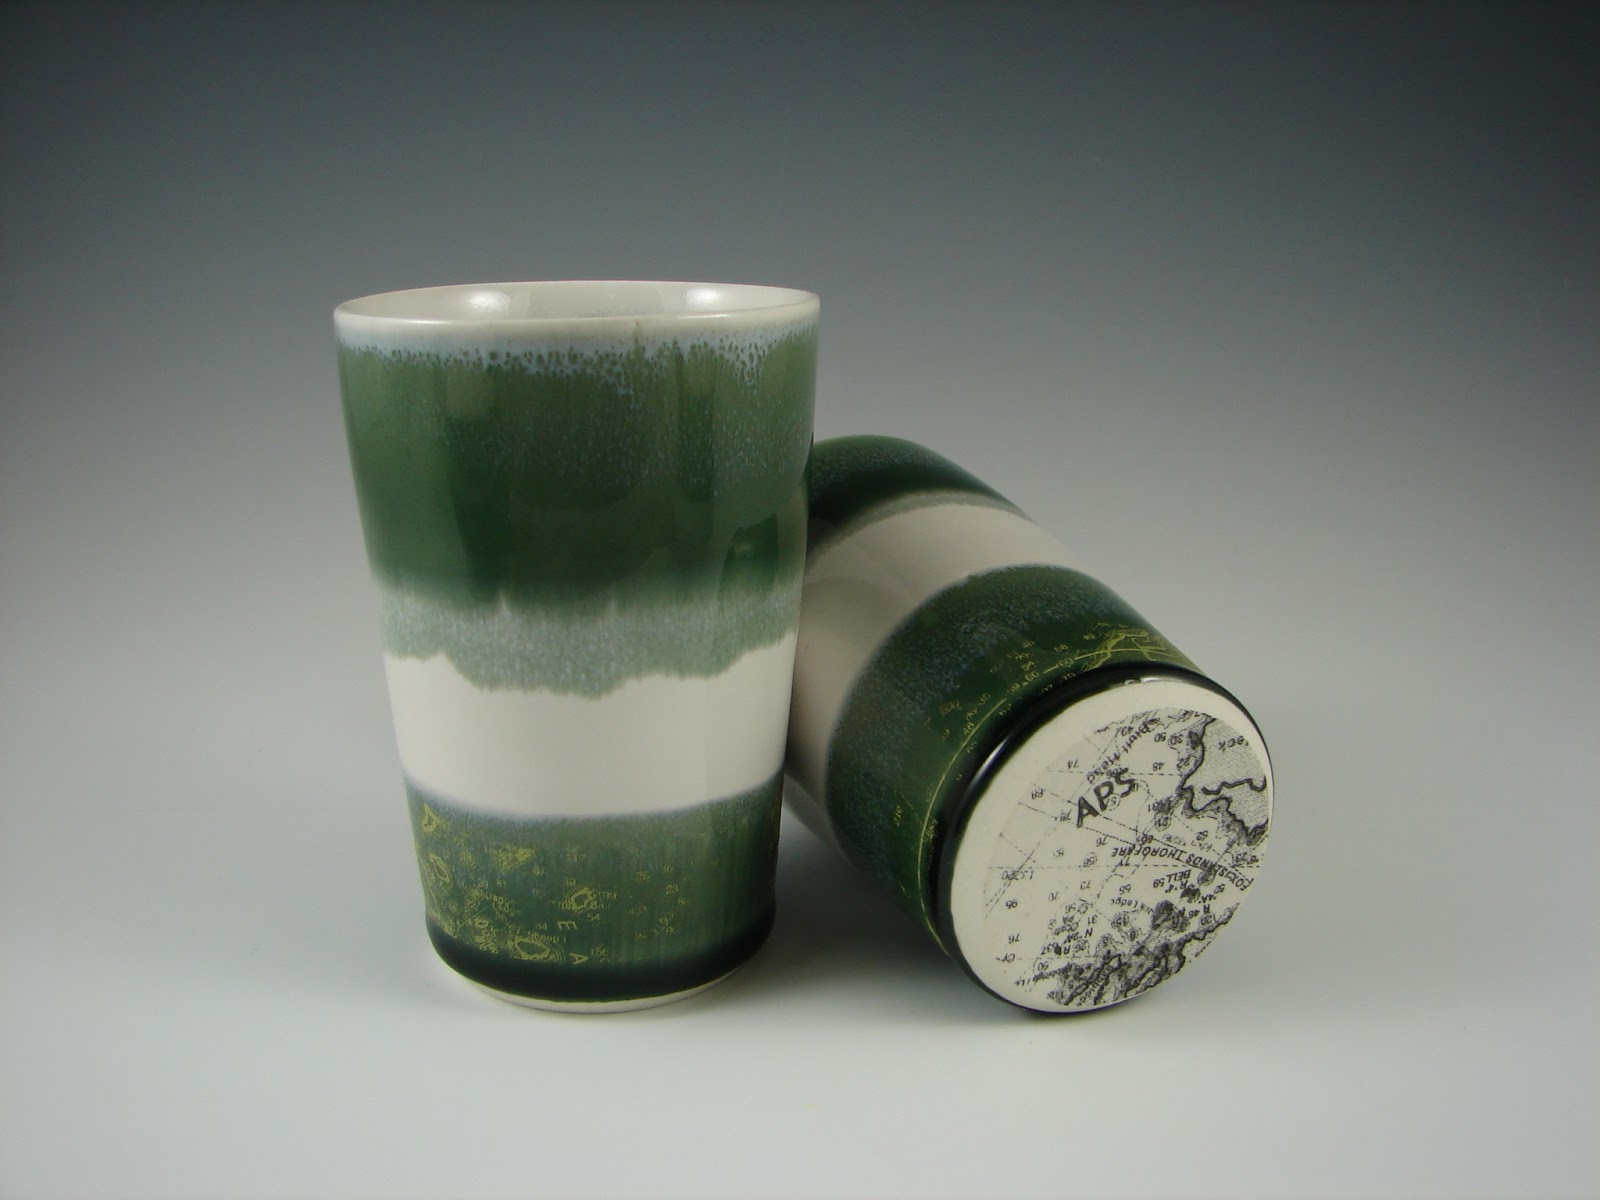 10oz. Cups, porcelain and decals, H. 4.5'', 2013.